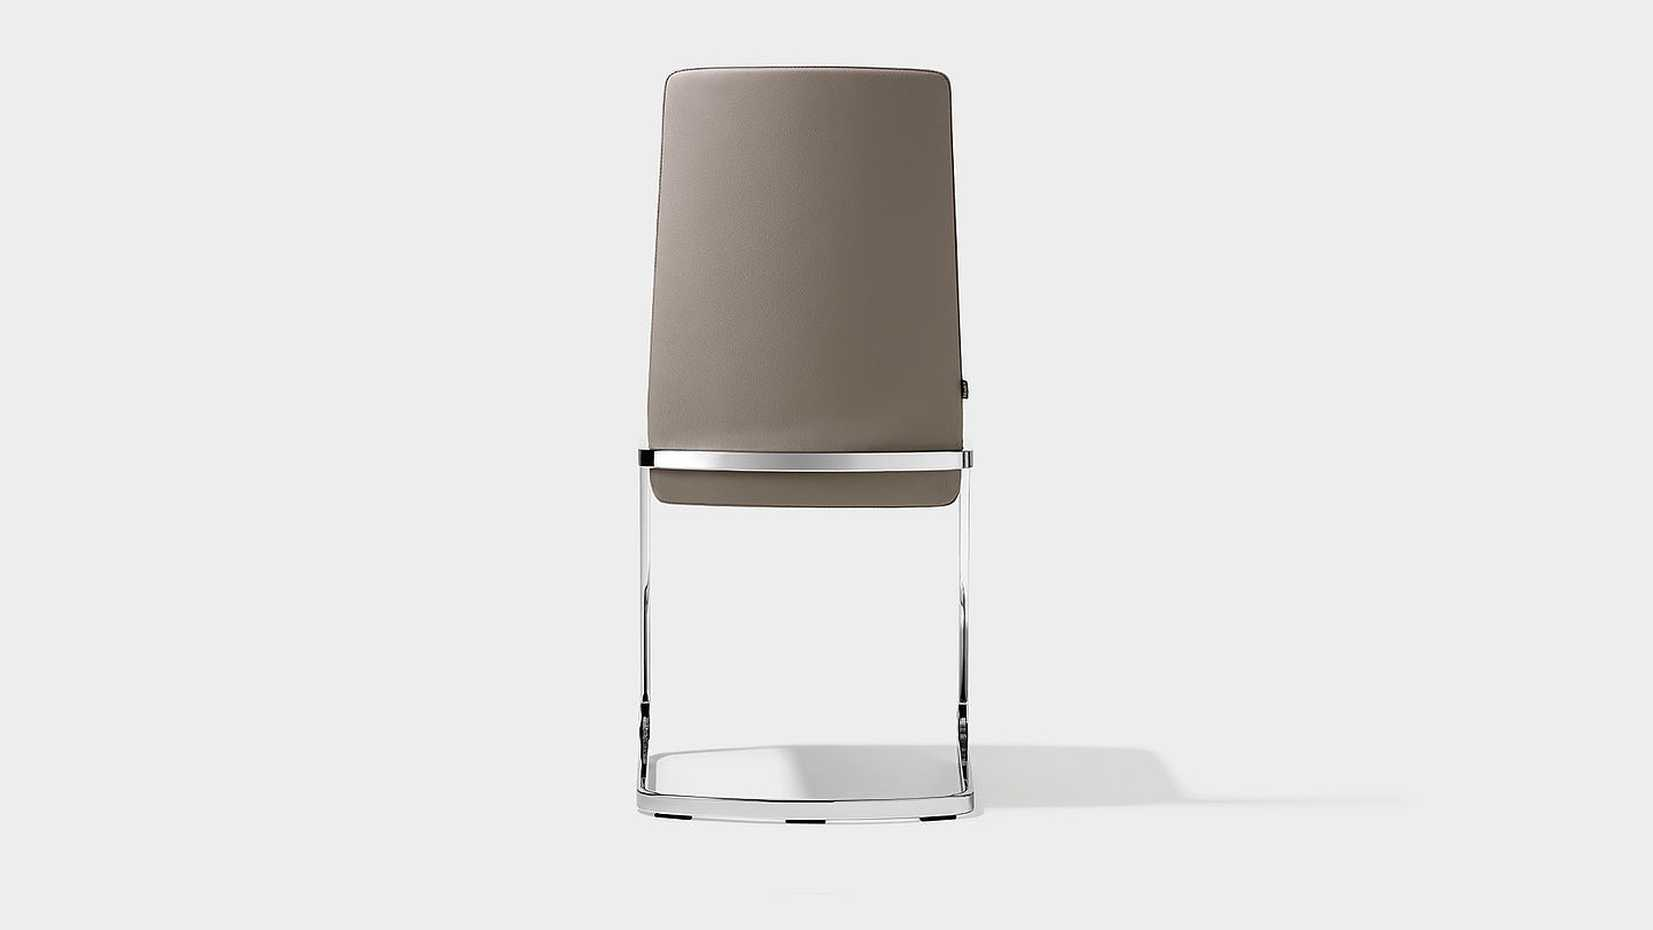 F1 Chair by Team 7 product image 1